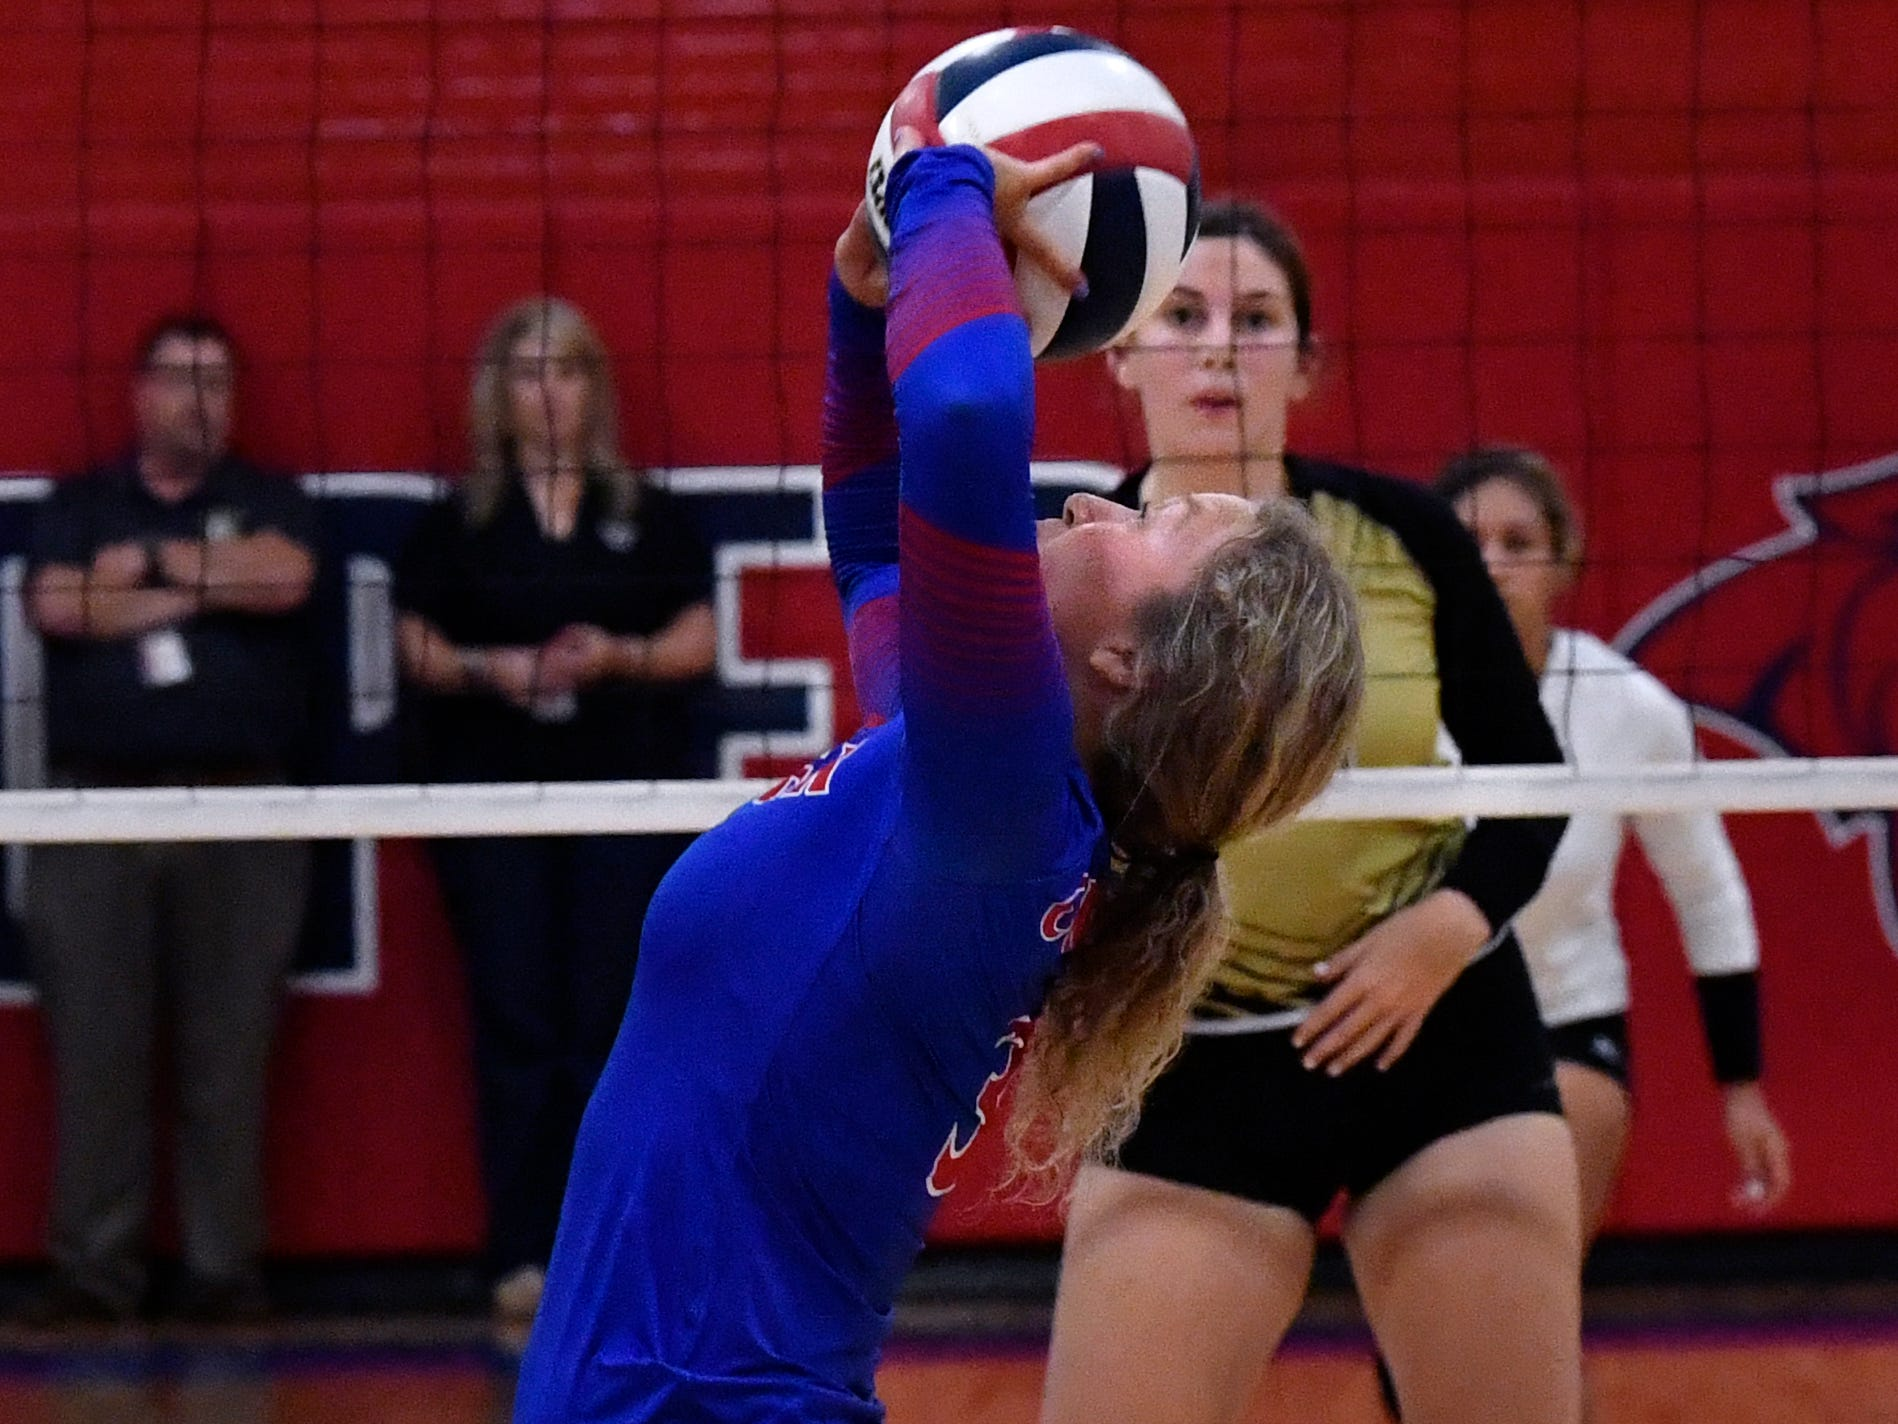 Cooper's Pearce Bjorlie sets the ball as Abilene High's Sydney Lawler waits for the spike. Abilene High won the crosstown volleyball game Tuesday August 7, 2018 against Cooper High in the best-of-five match, 25-21, 16-25, 25-20, 17-25, 15-7.